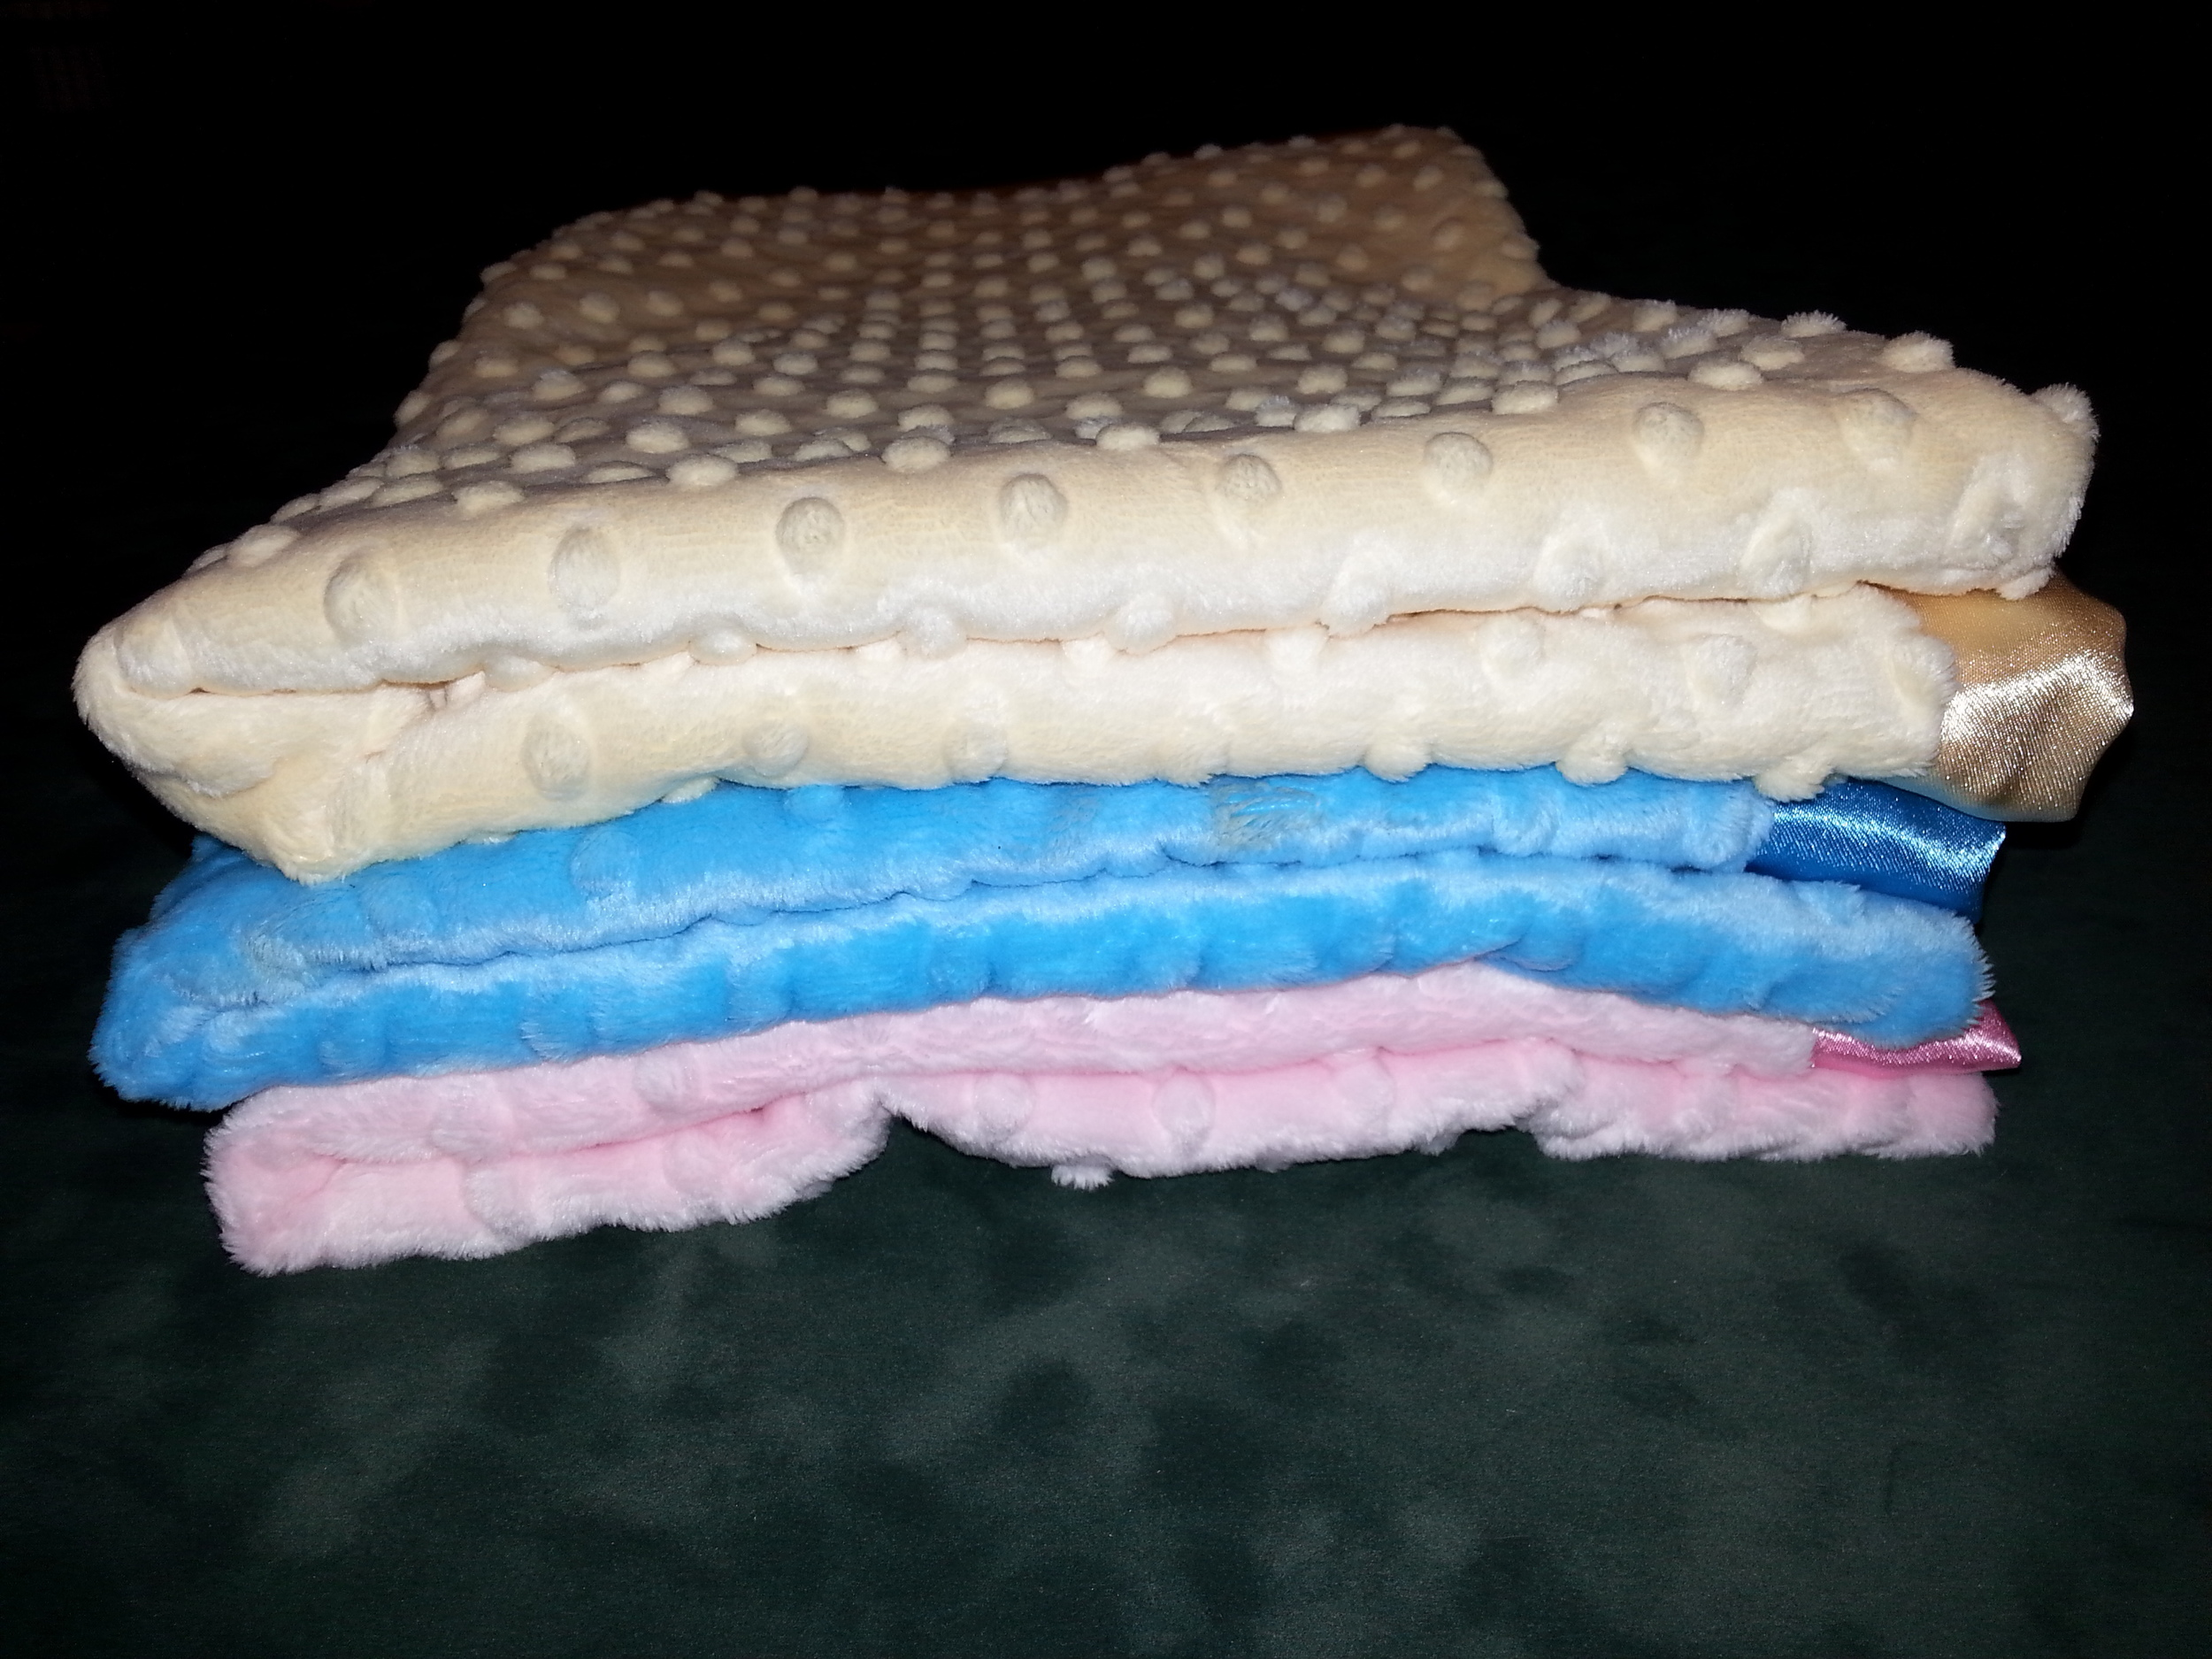 Baby blankets.